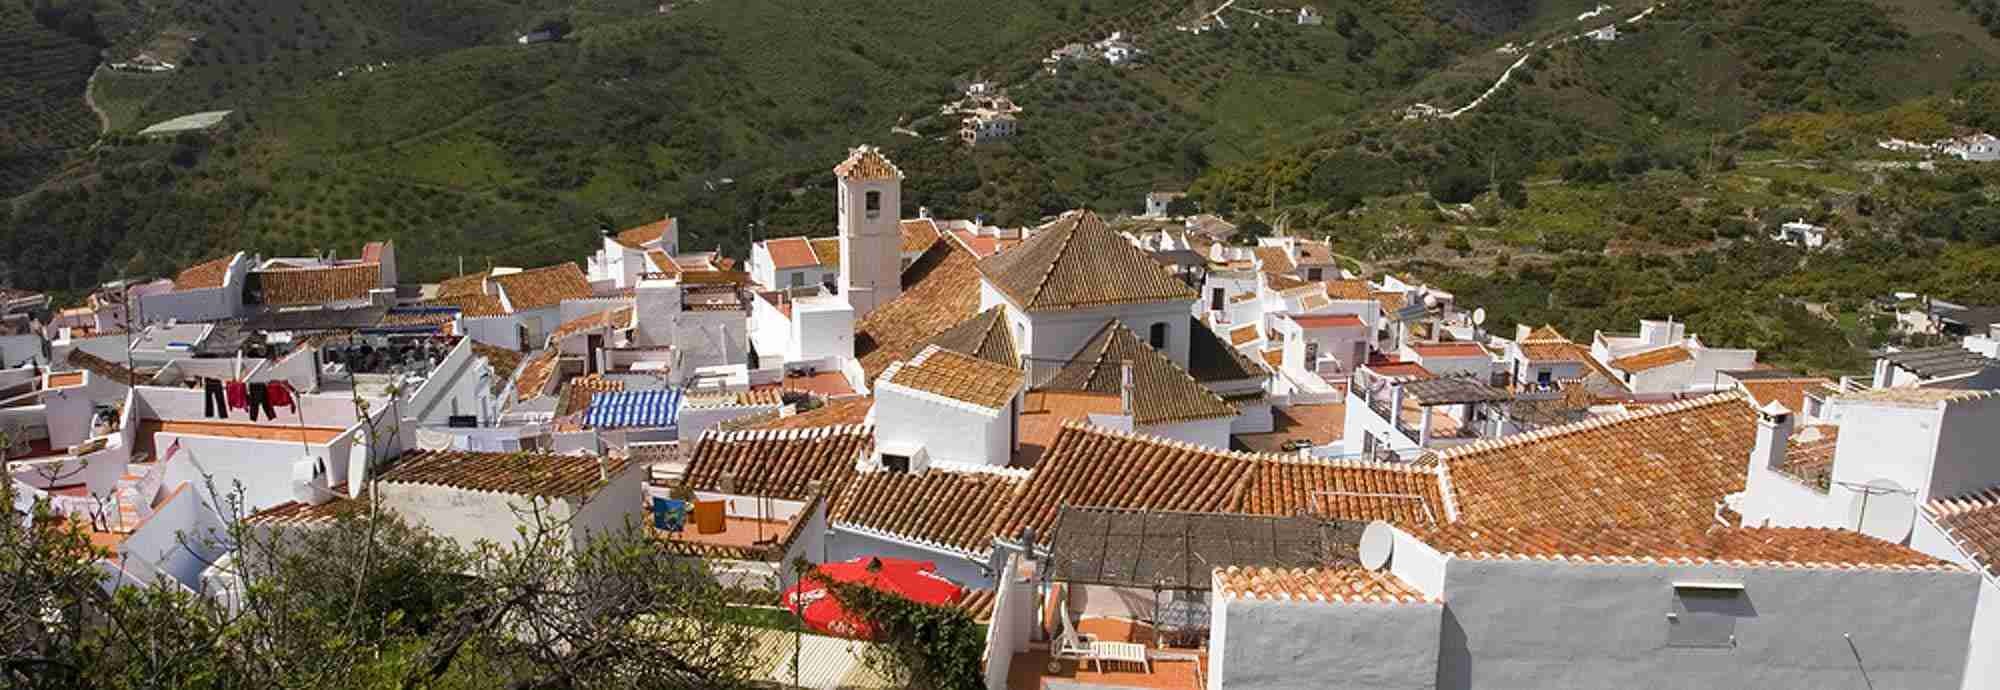 Holiday  Villas in Axarquia